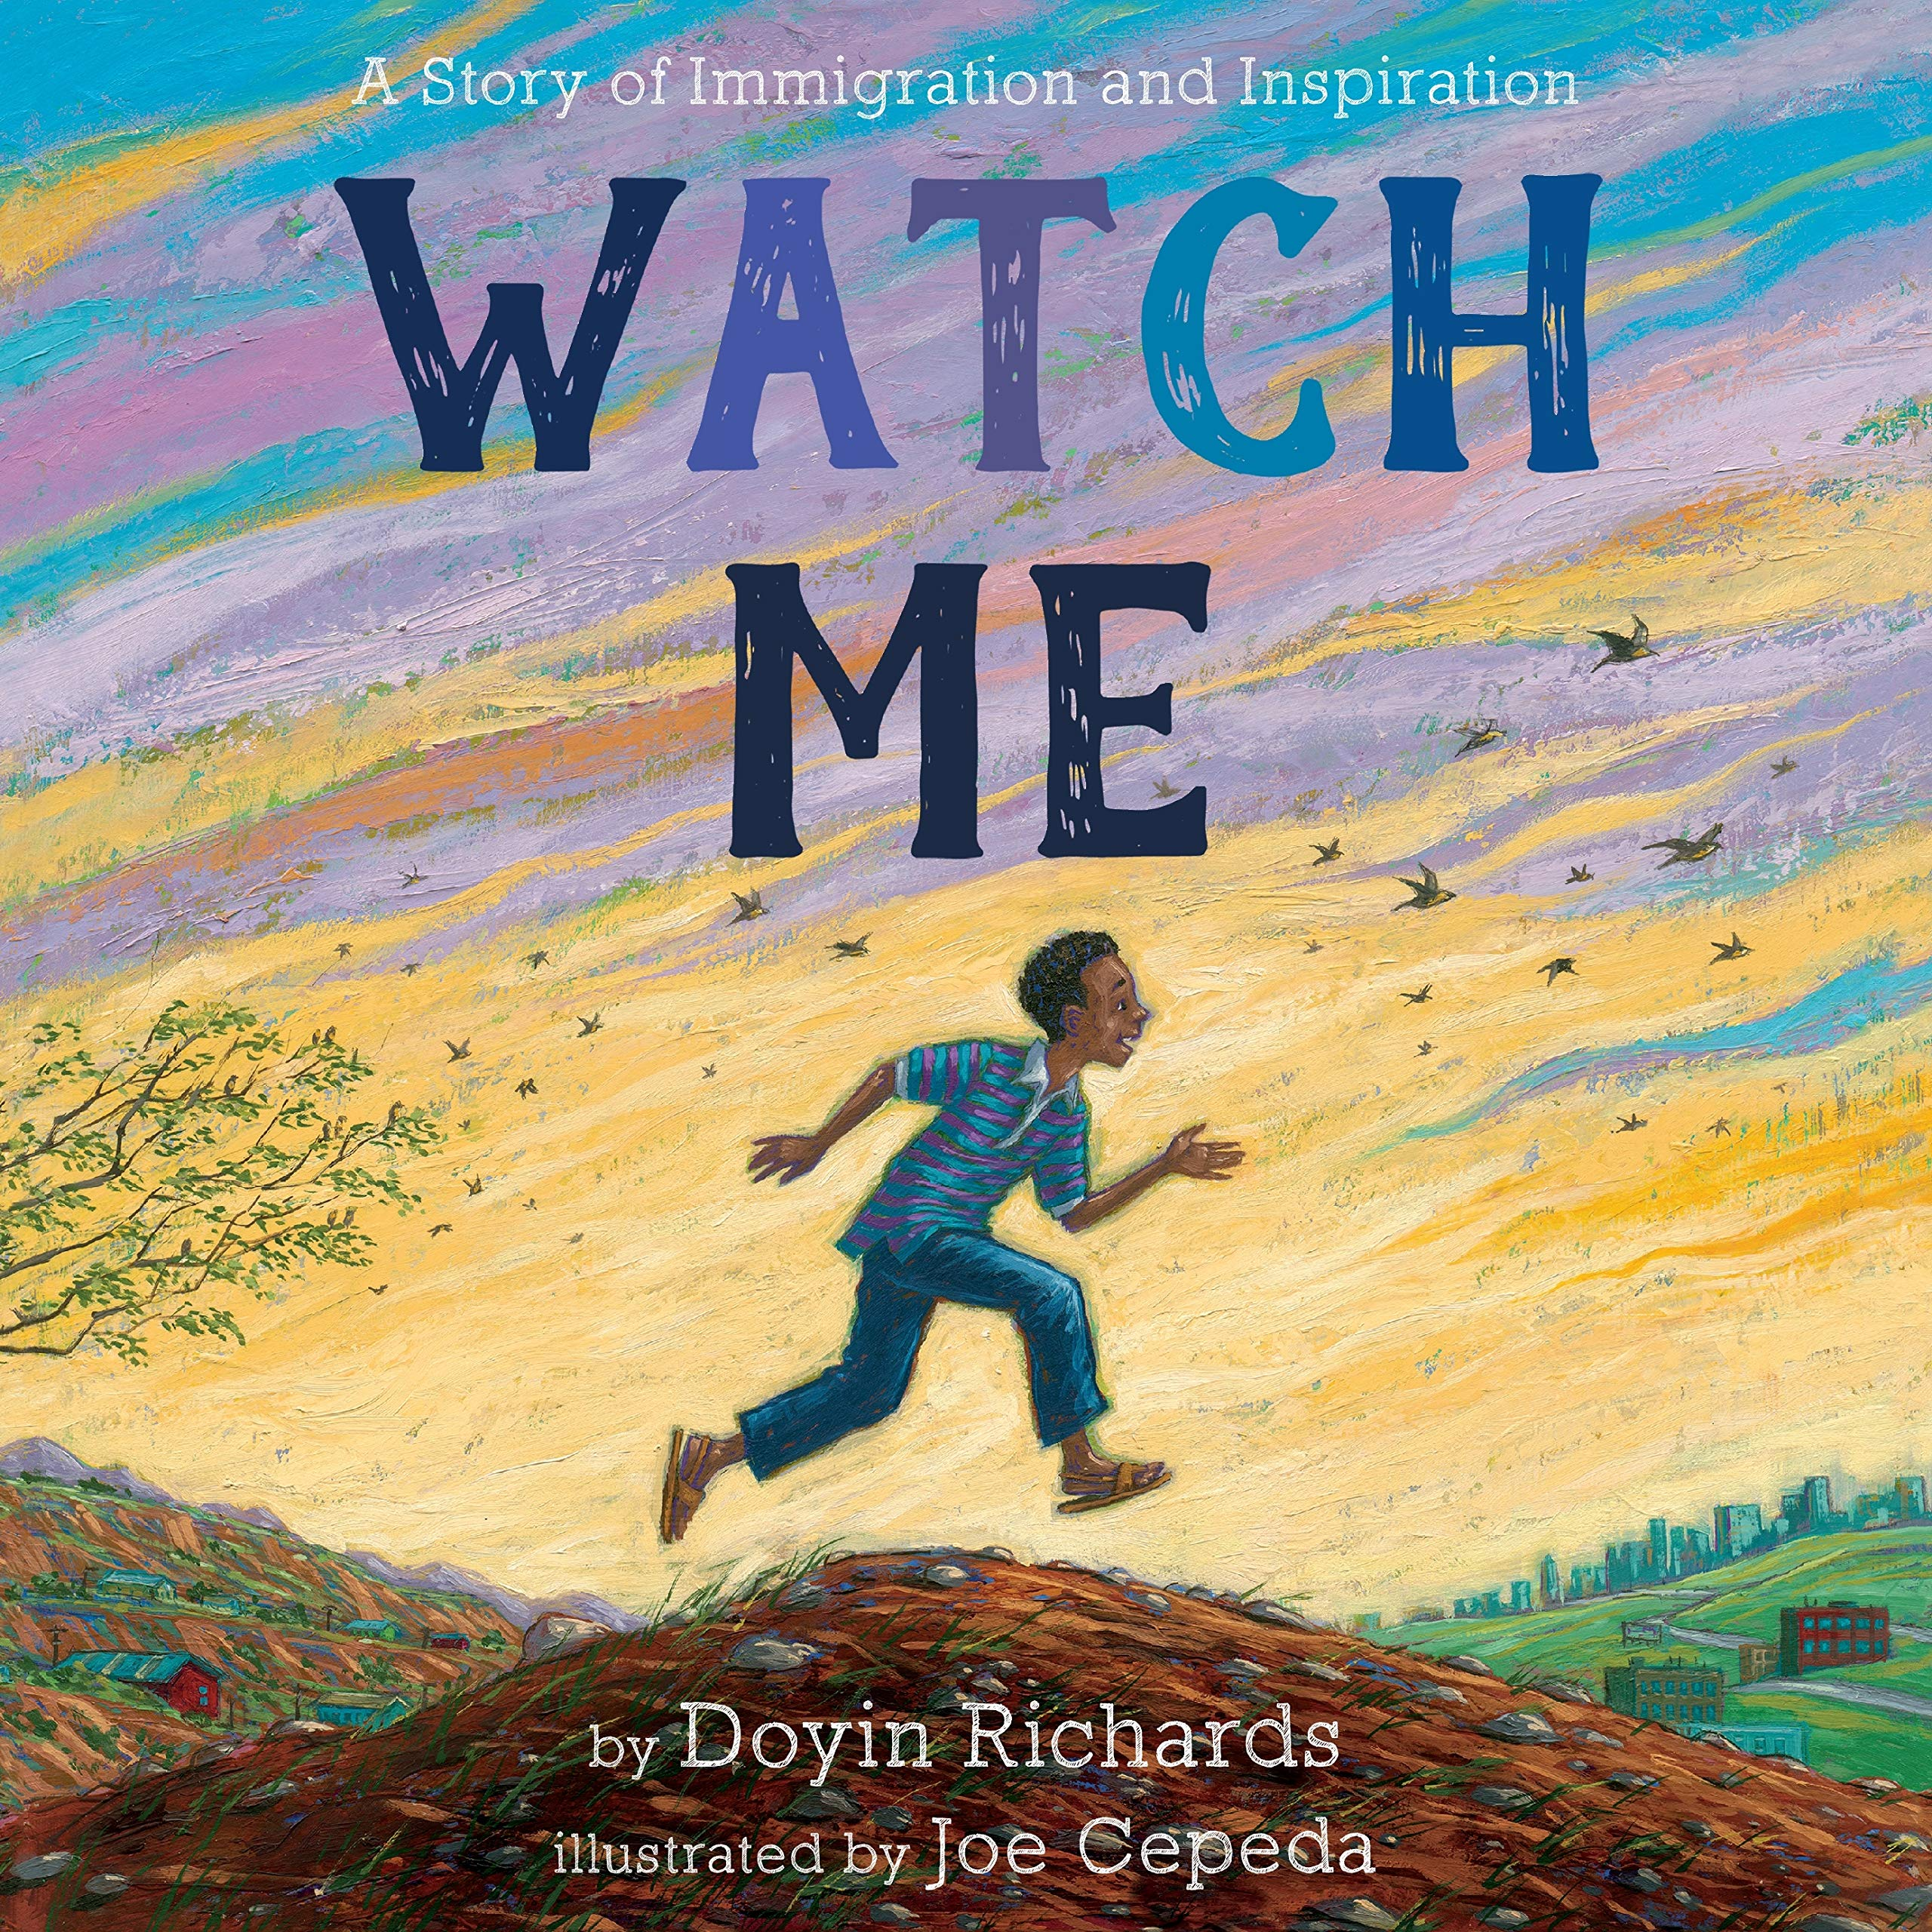 Watch Me: A Story of Immigration and Inspiration: Richards, Doyin, Cepeda,  Joe: 9781250266514: Amazon.com: Books